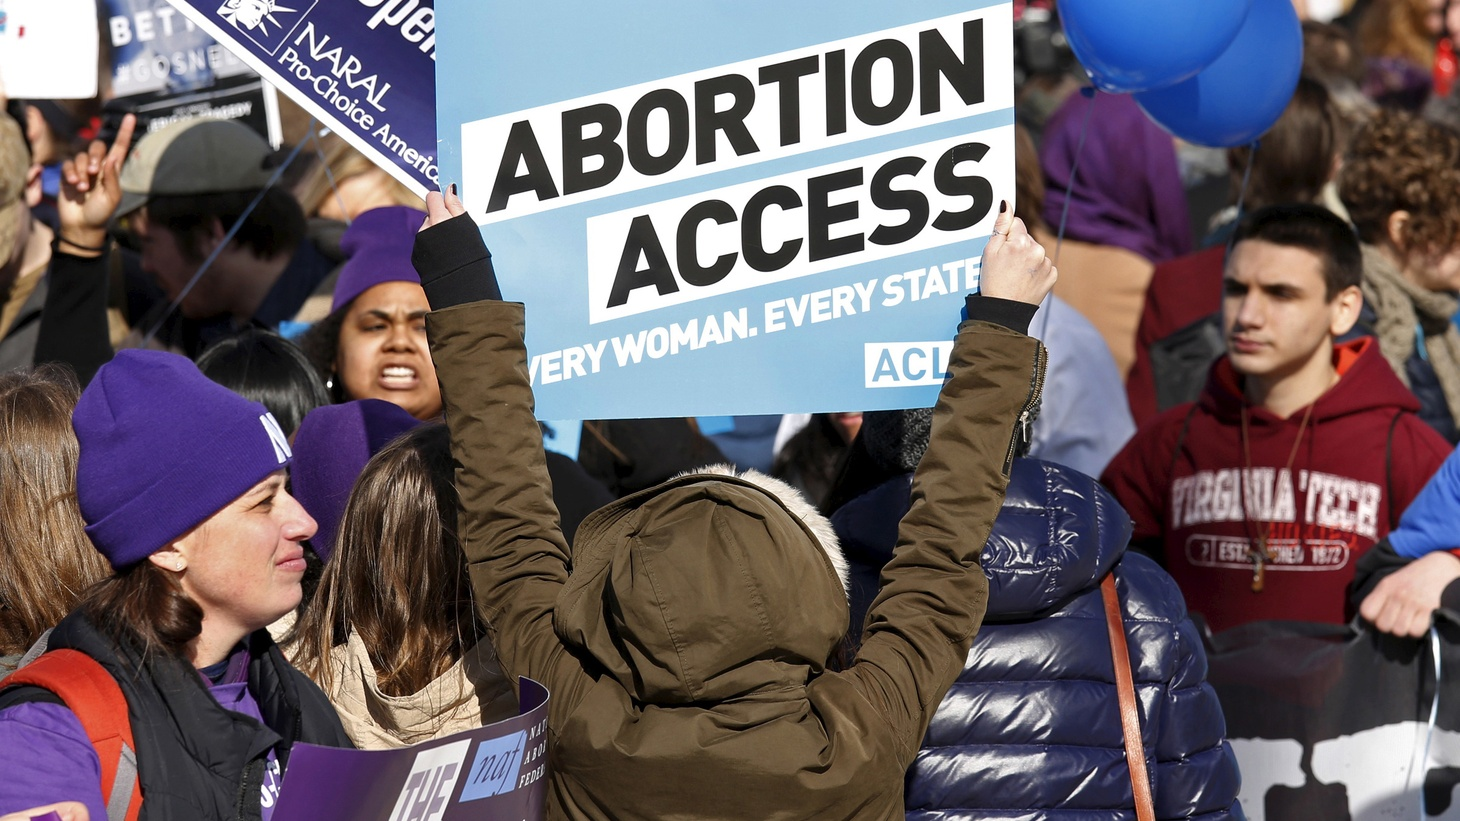 What will the Supreme Court's decision in the Texas abortion-clinics case mean for abortion access in states across the country?